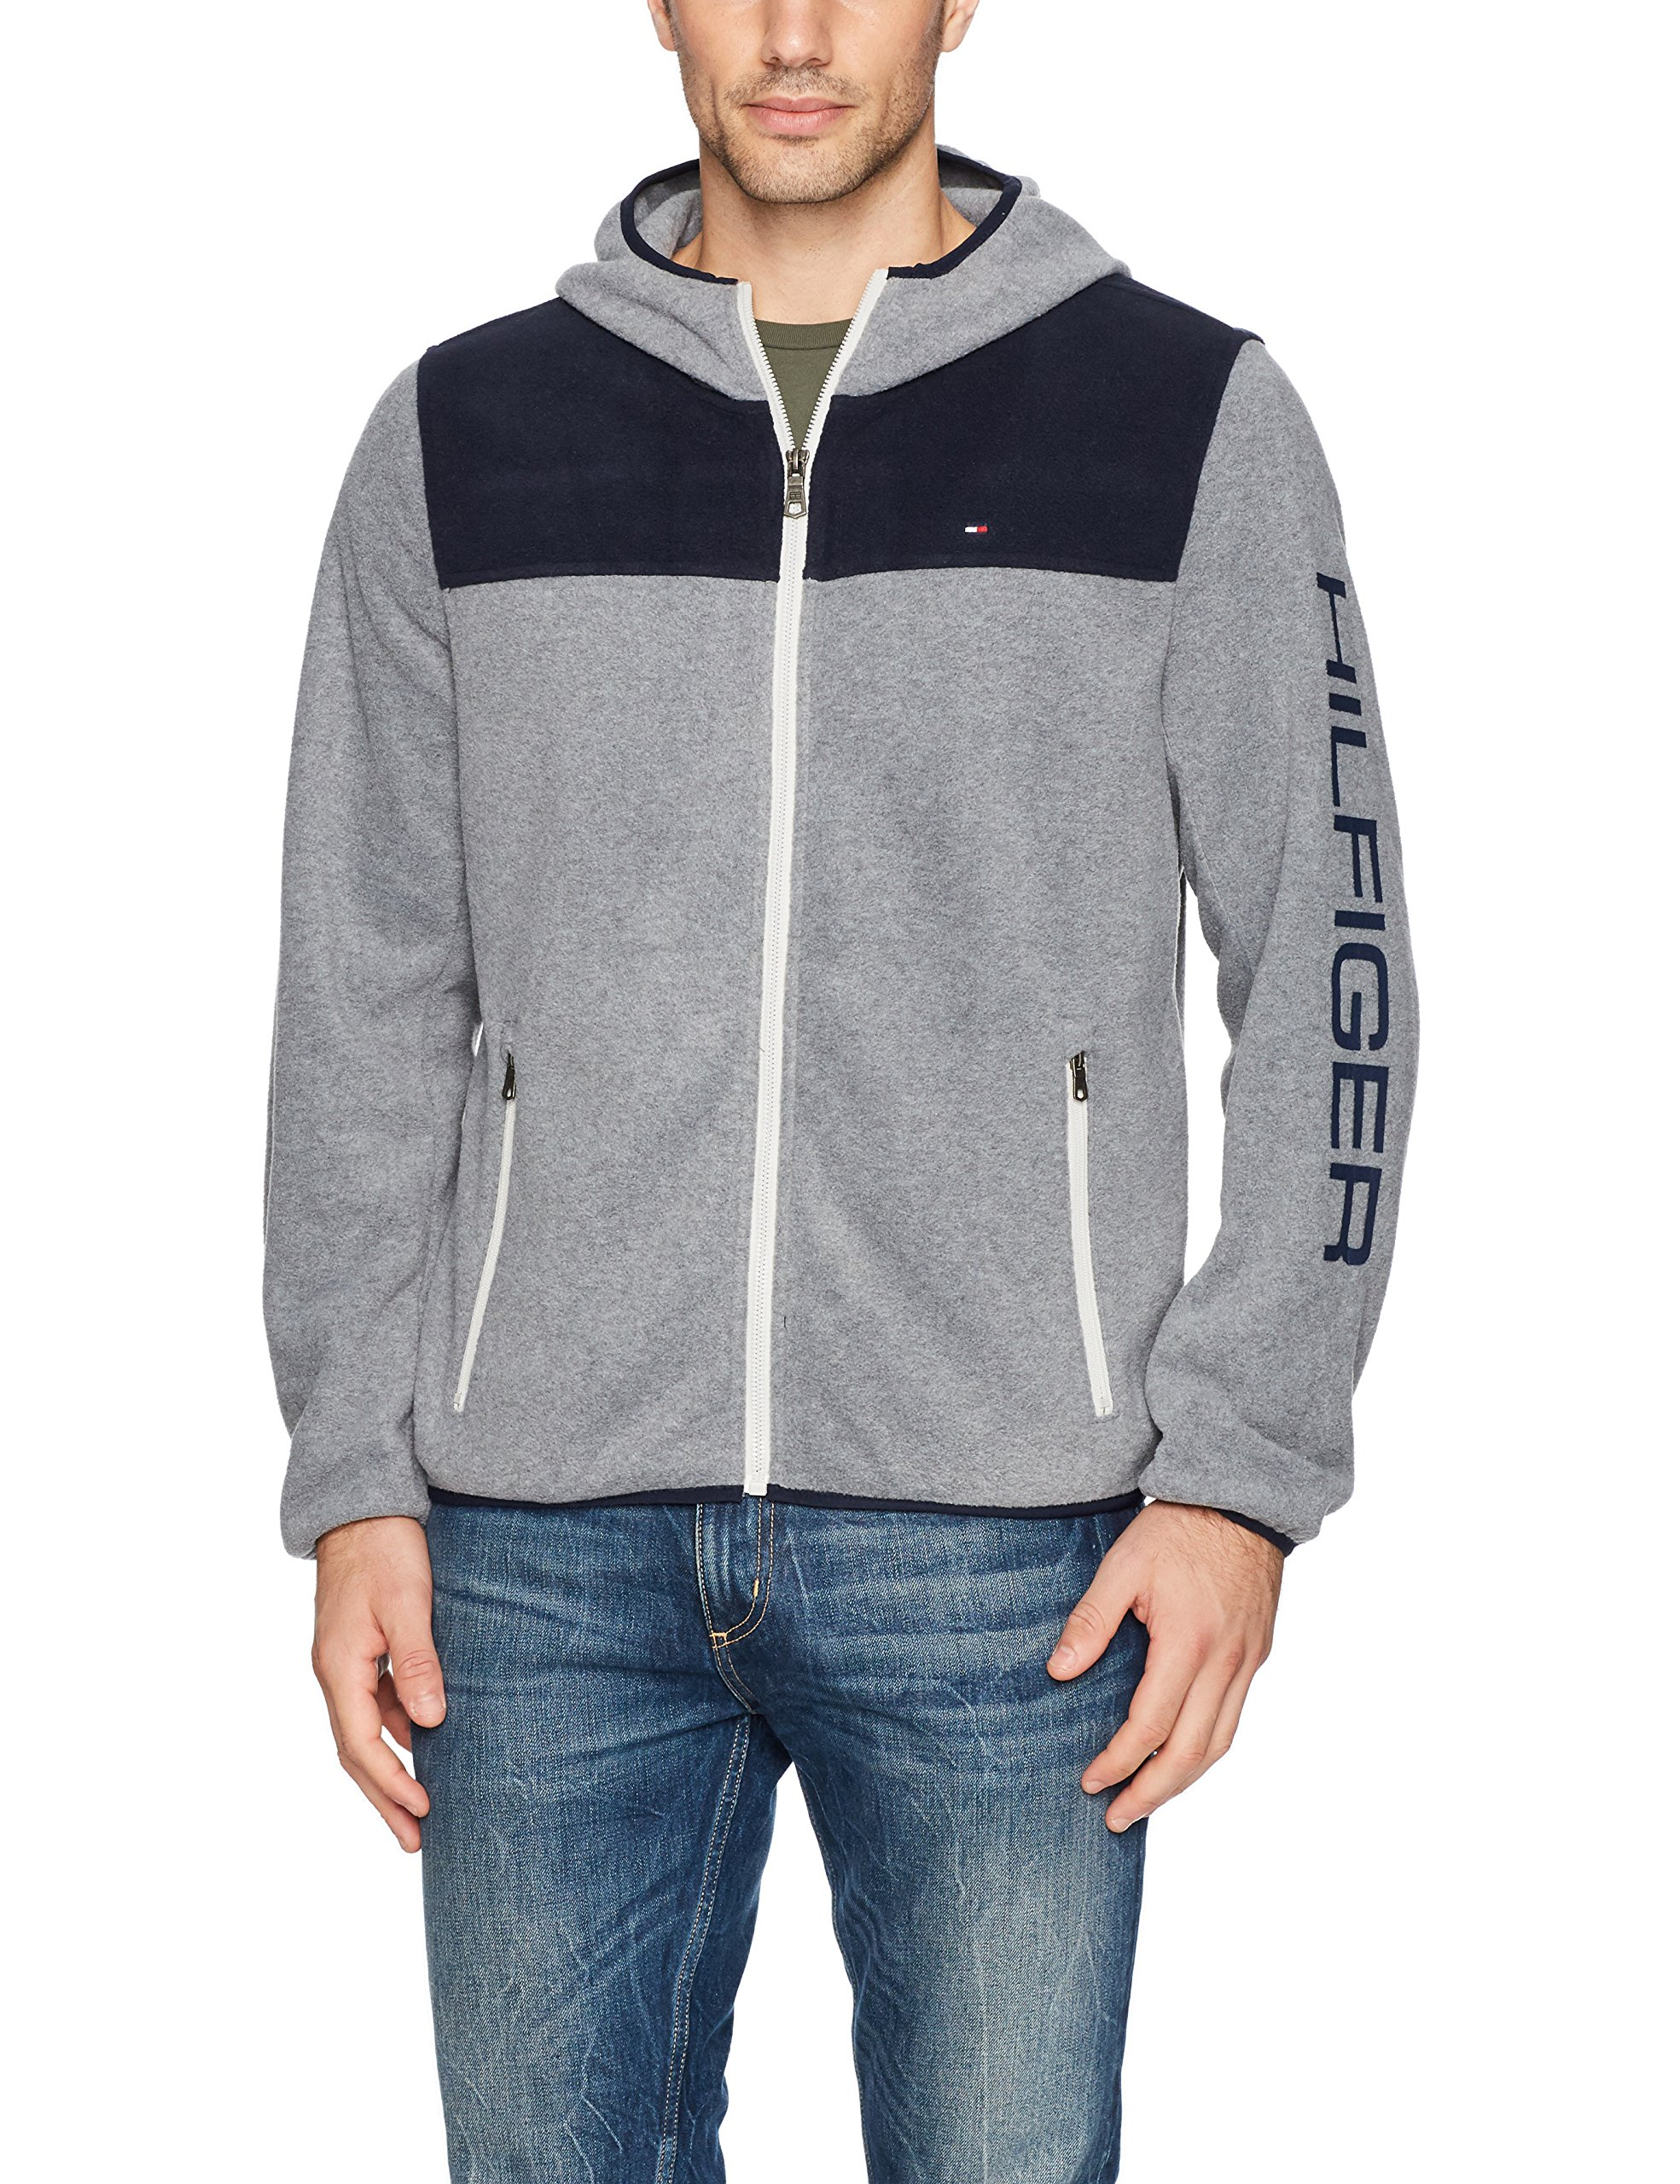 Tommy Hilfiger Men's Hooded Performance Fleece Jacket, Navy/Light Grey, Large by Tommy Hilfiger